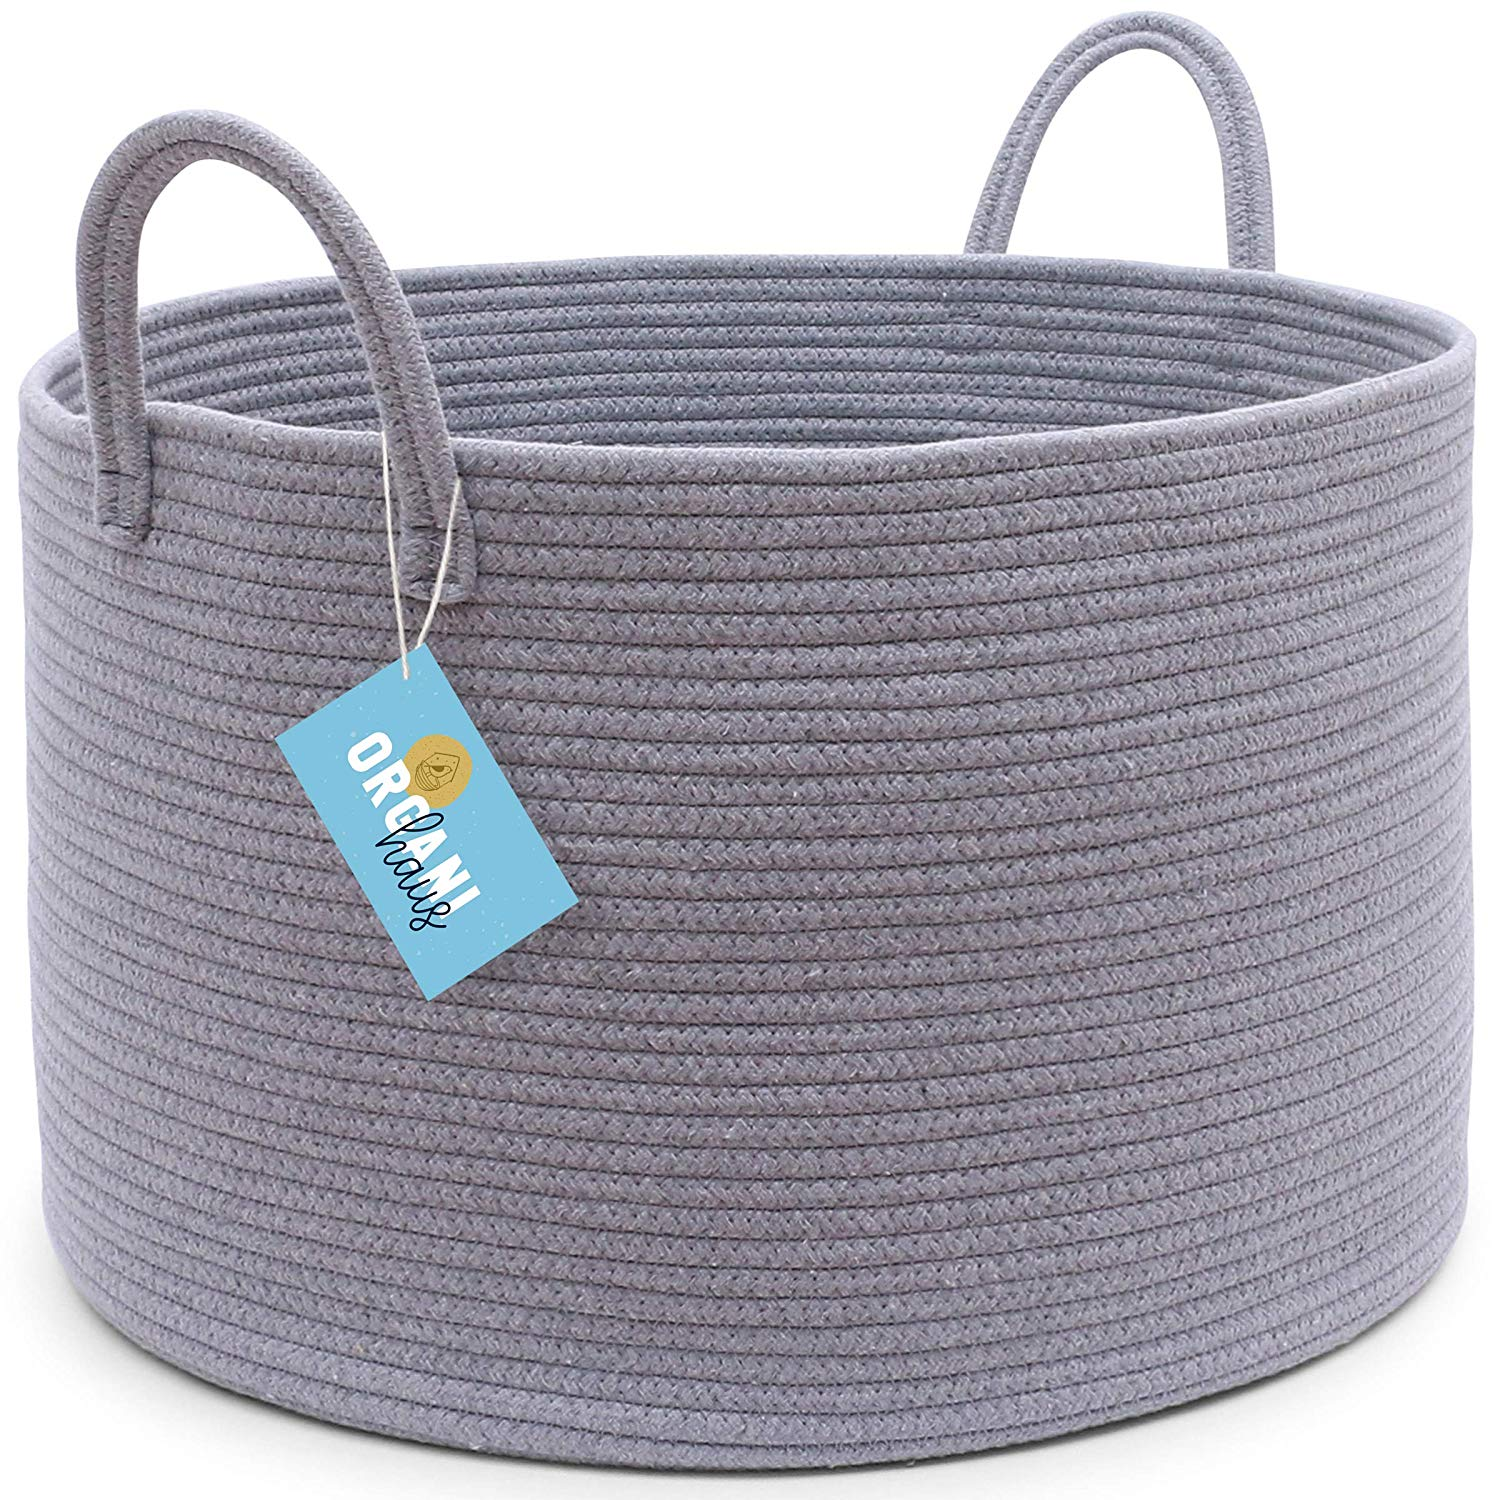 Extra Large Round Grey Soft Storage Bin